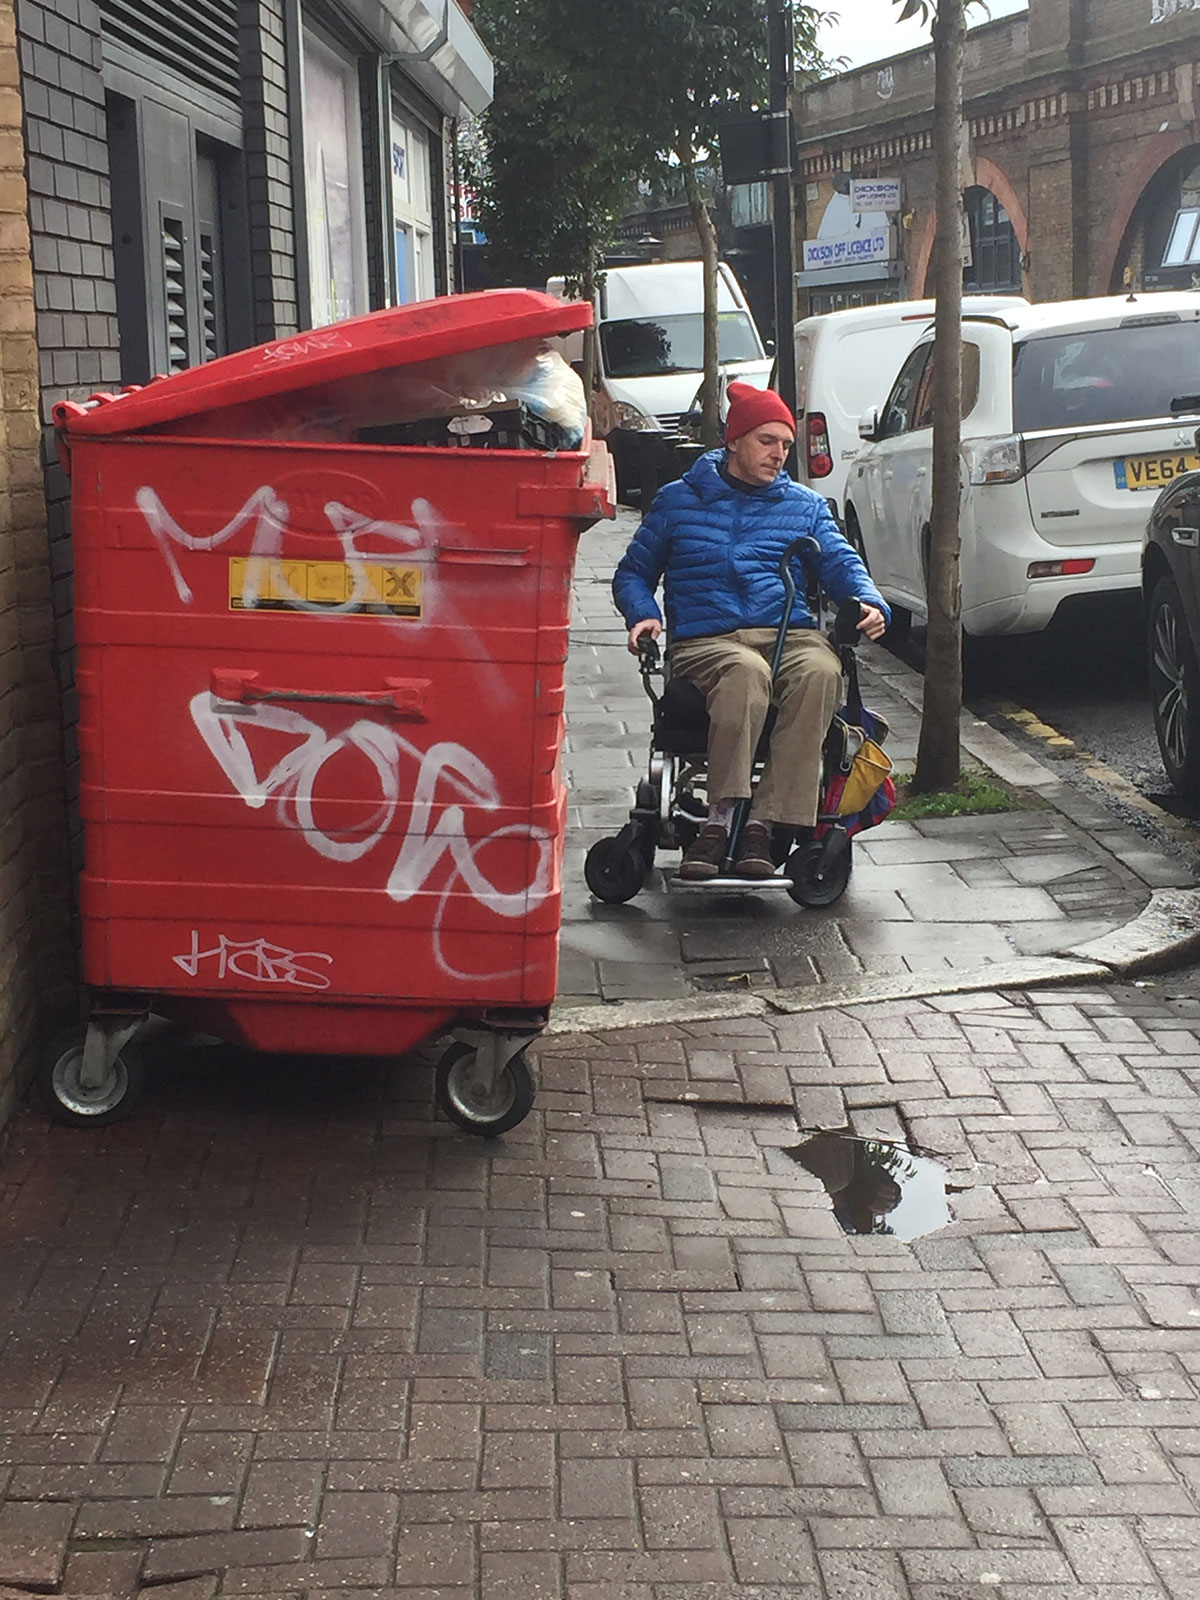 Herne Hill Forum Bin Go project - George Hornby in wheelchair struggling to get passed the commercial bins